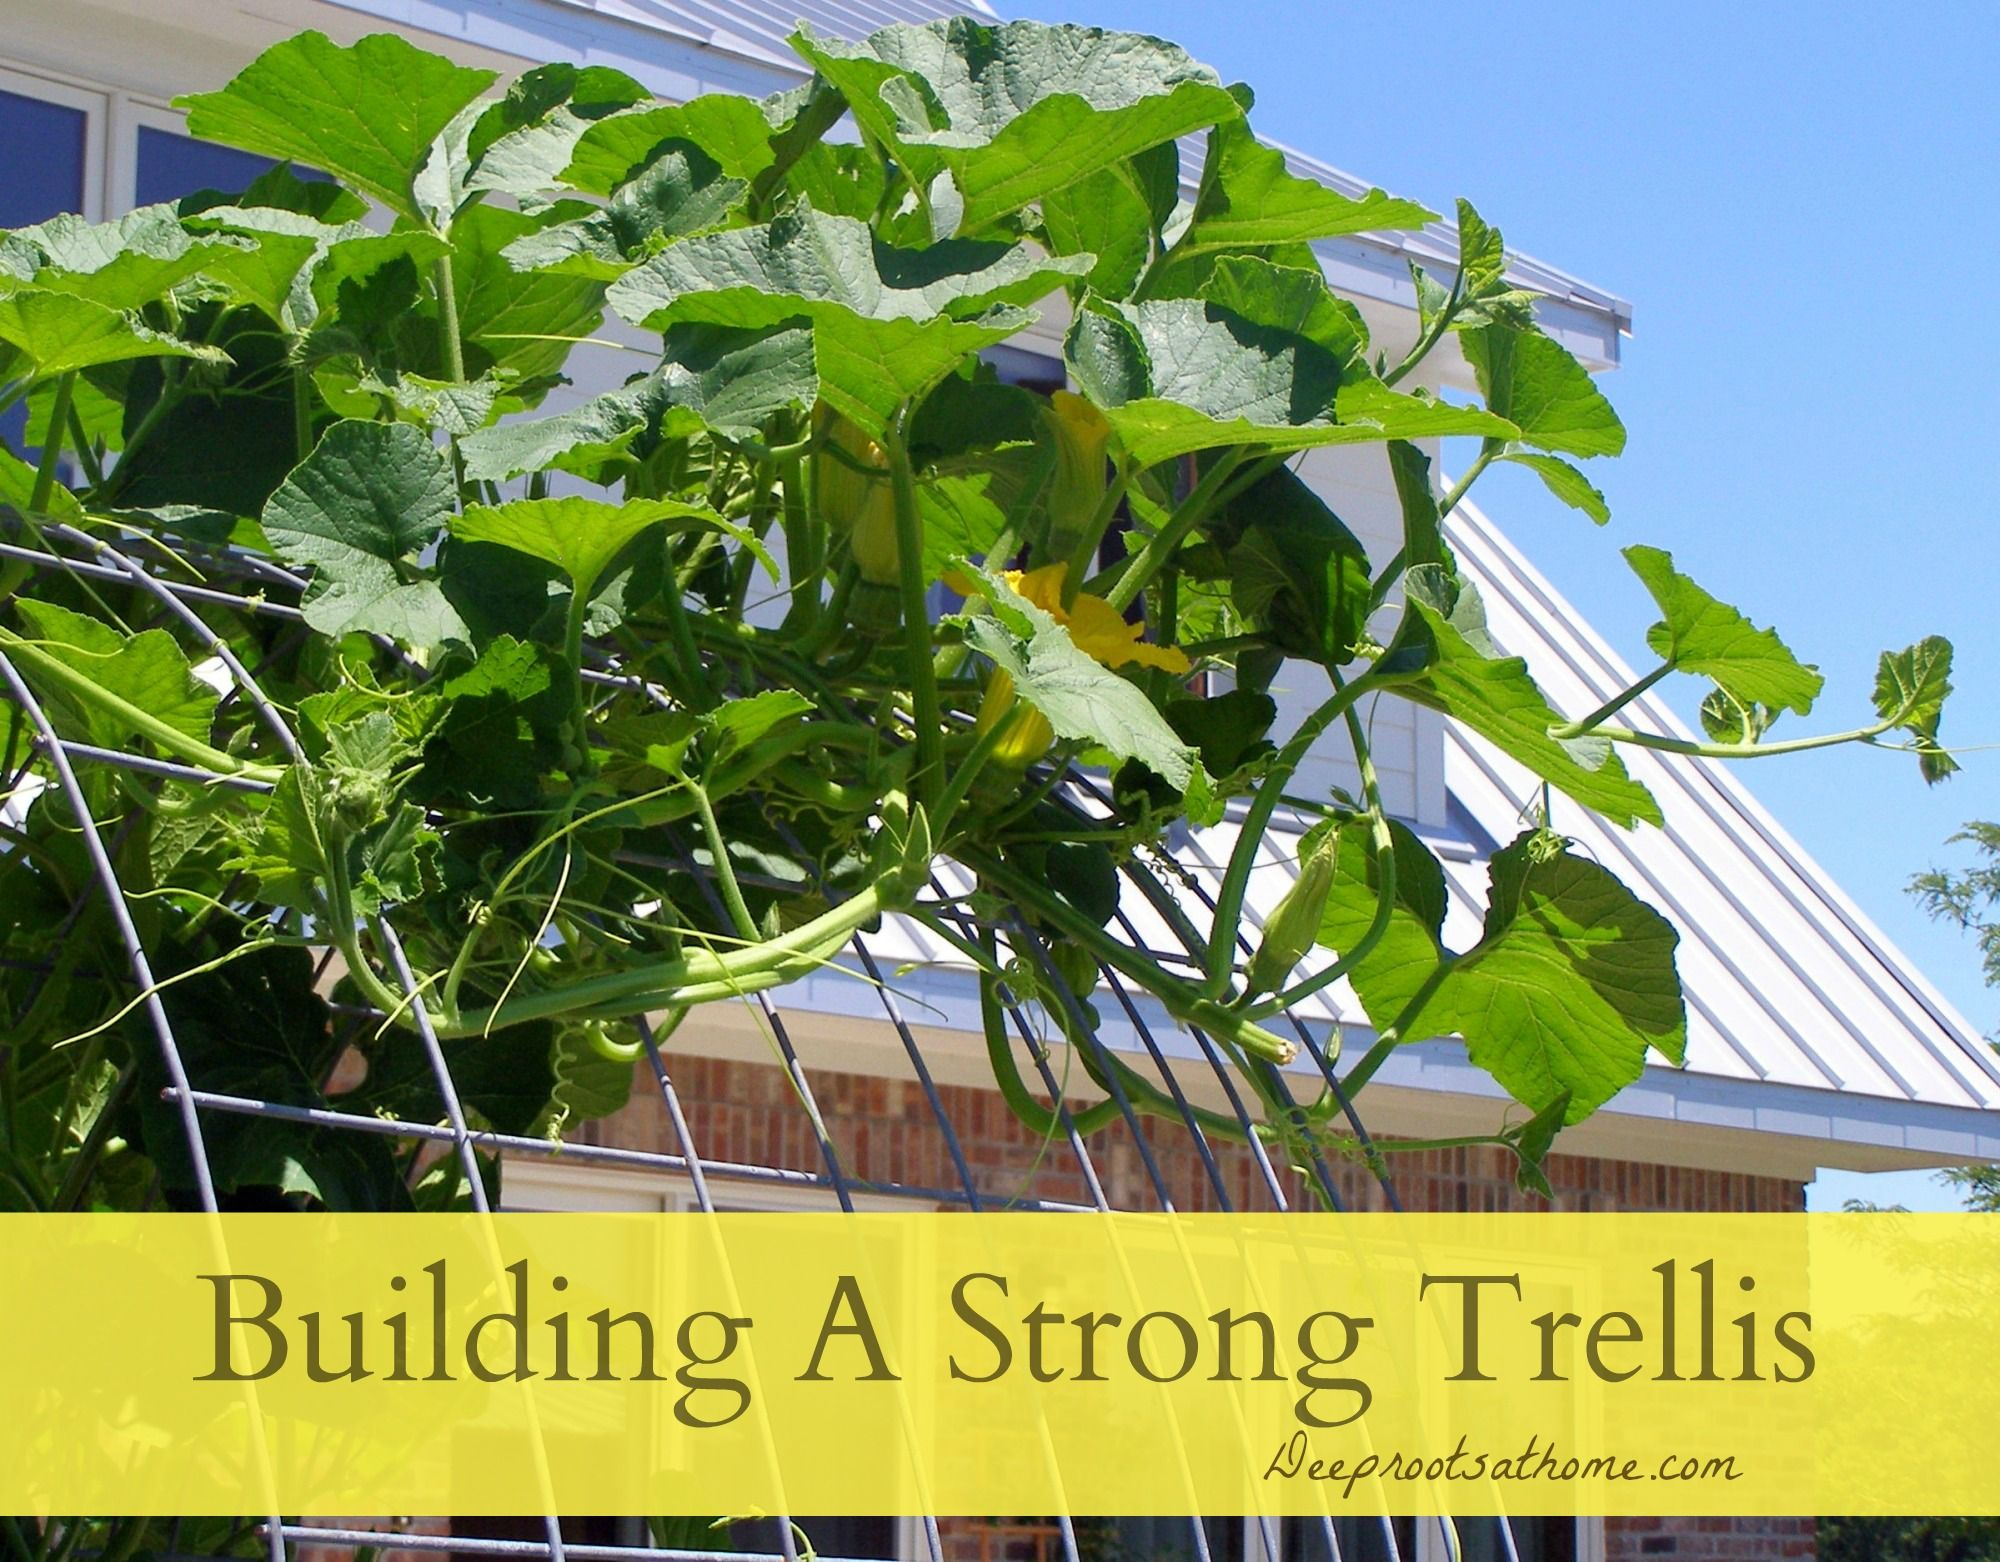 Trellis Planting Ideas Part - 33: Building A Strong Trellis, Grow Cantaloupes, Melons, Squash, Gourds,  Climbers,